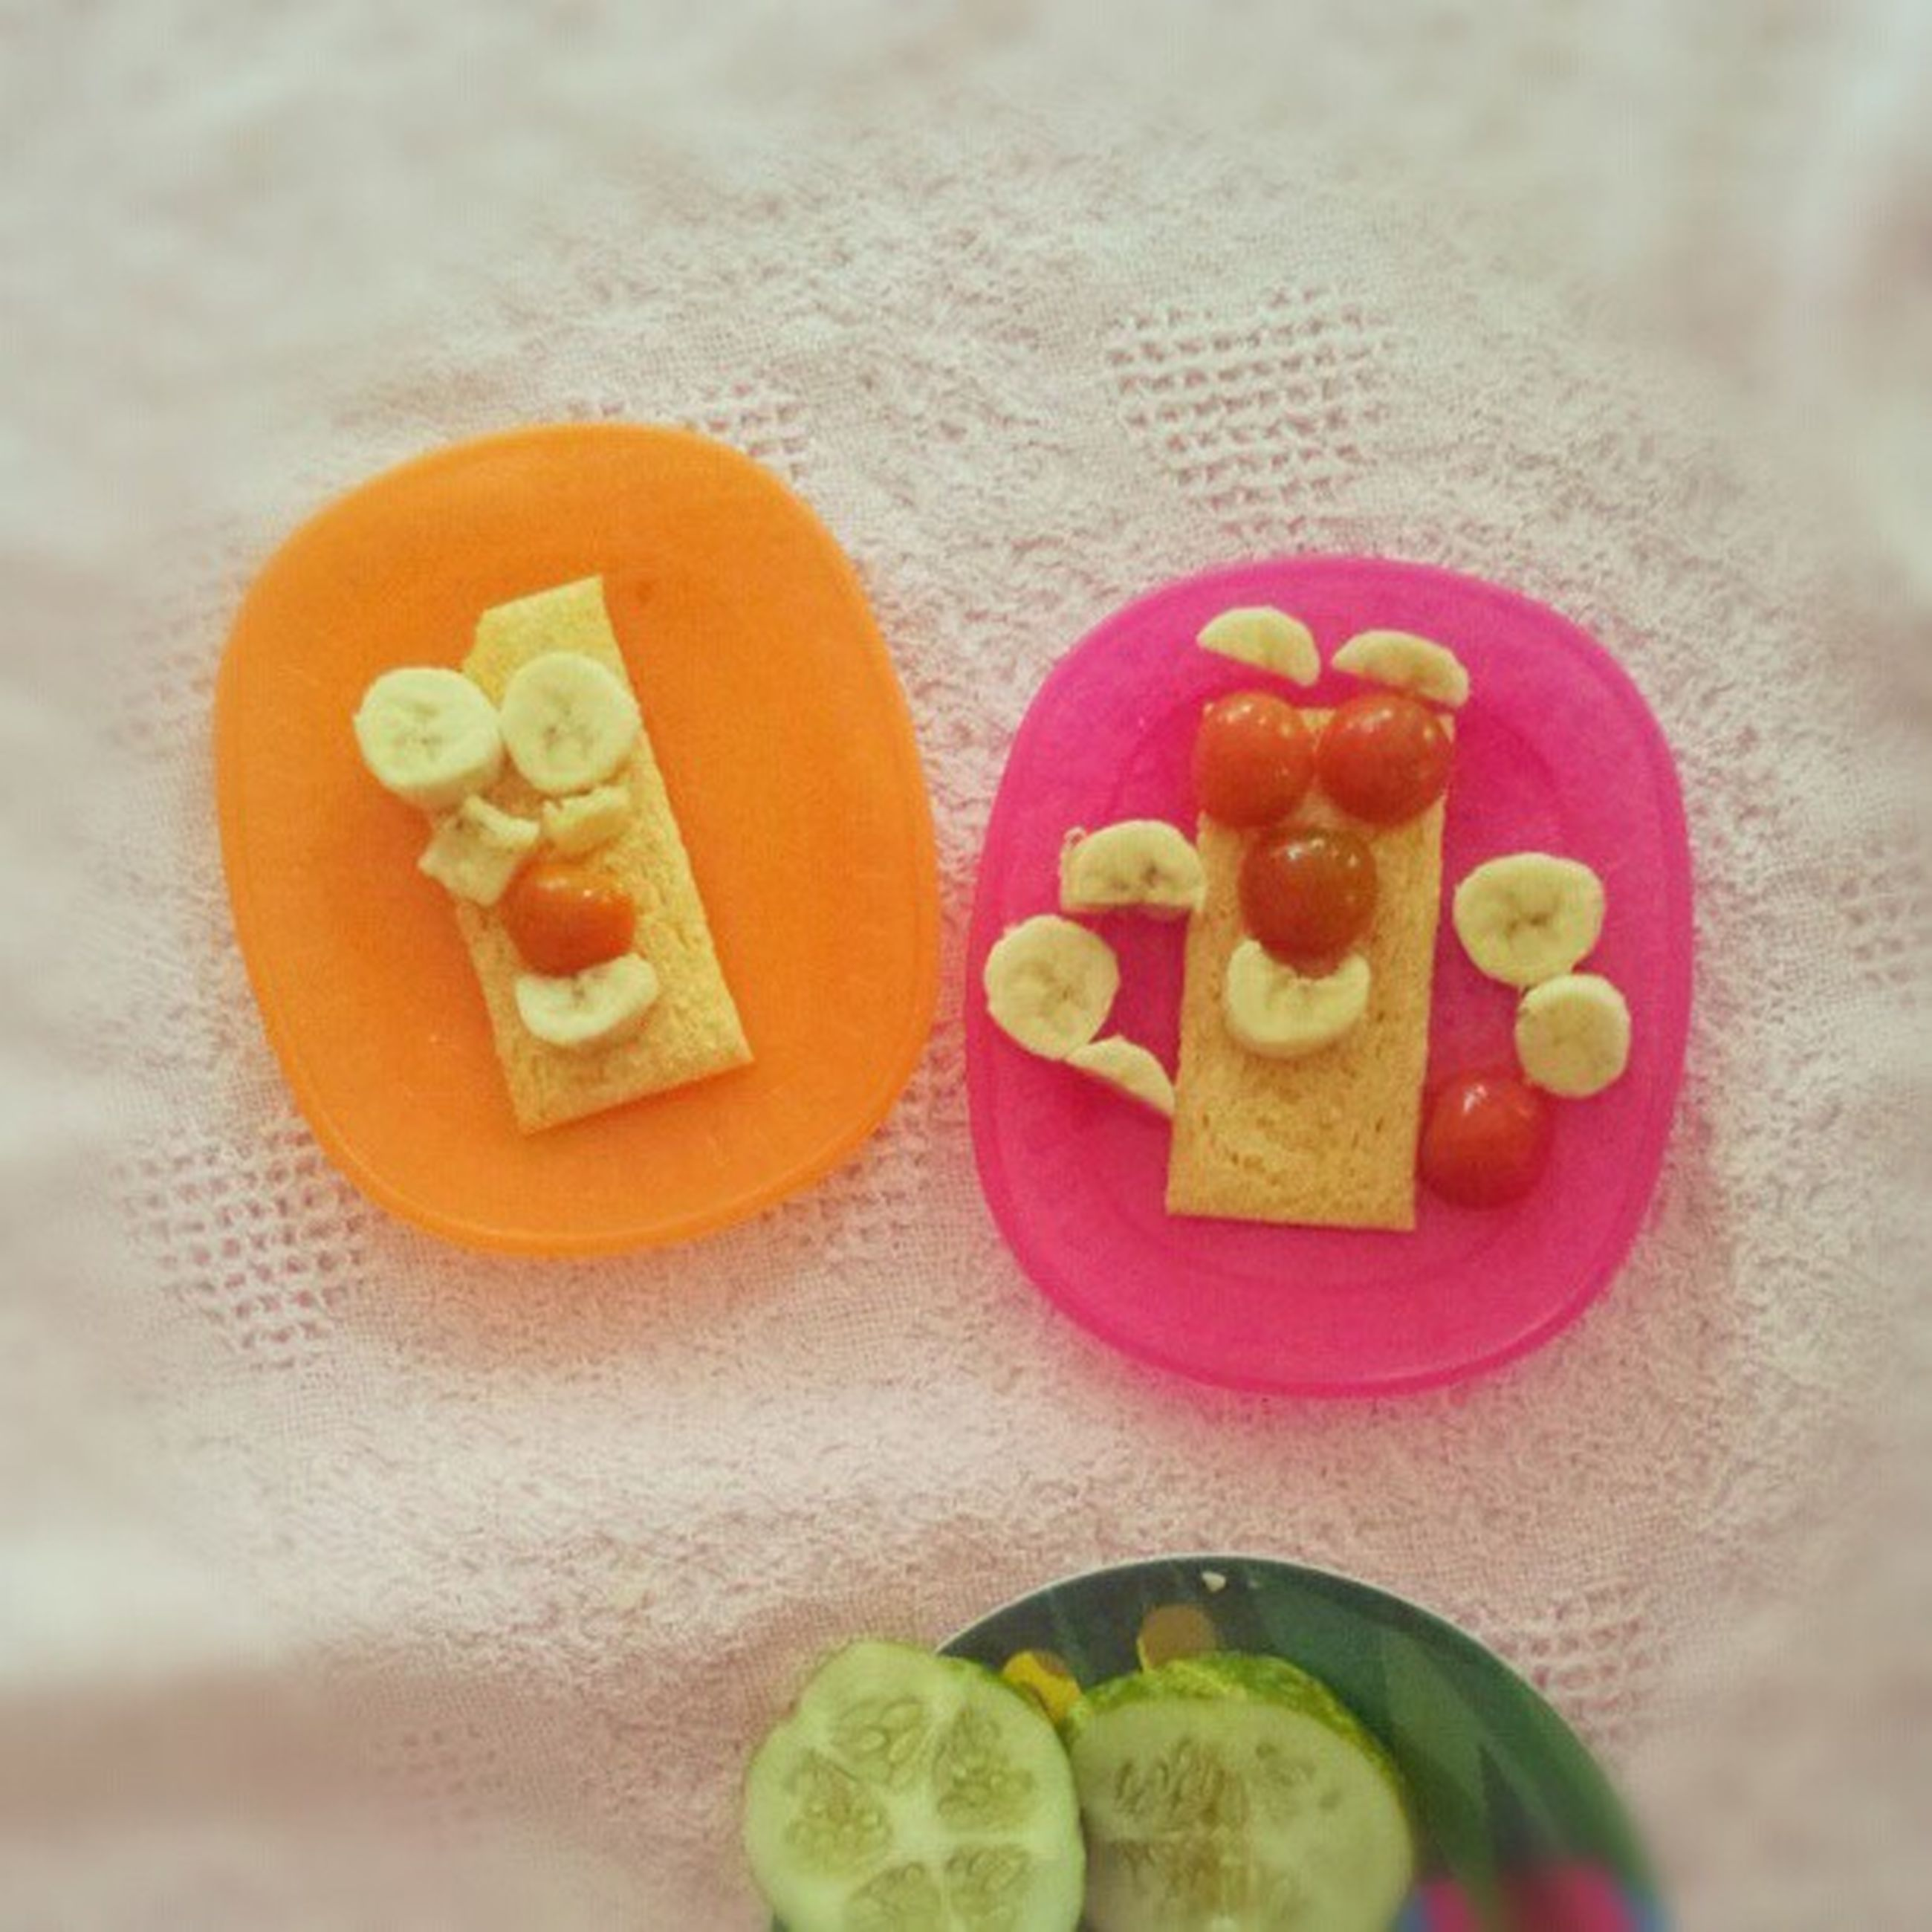 food, indoors, food and drink, still life, sweet food, multi colored, freshness, close-up, indulgence, table, unhealthy eating, creativity, text, ready-to-eat, high angle view, heart shape, art and craft, dessert, western script, anthropomorphic face